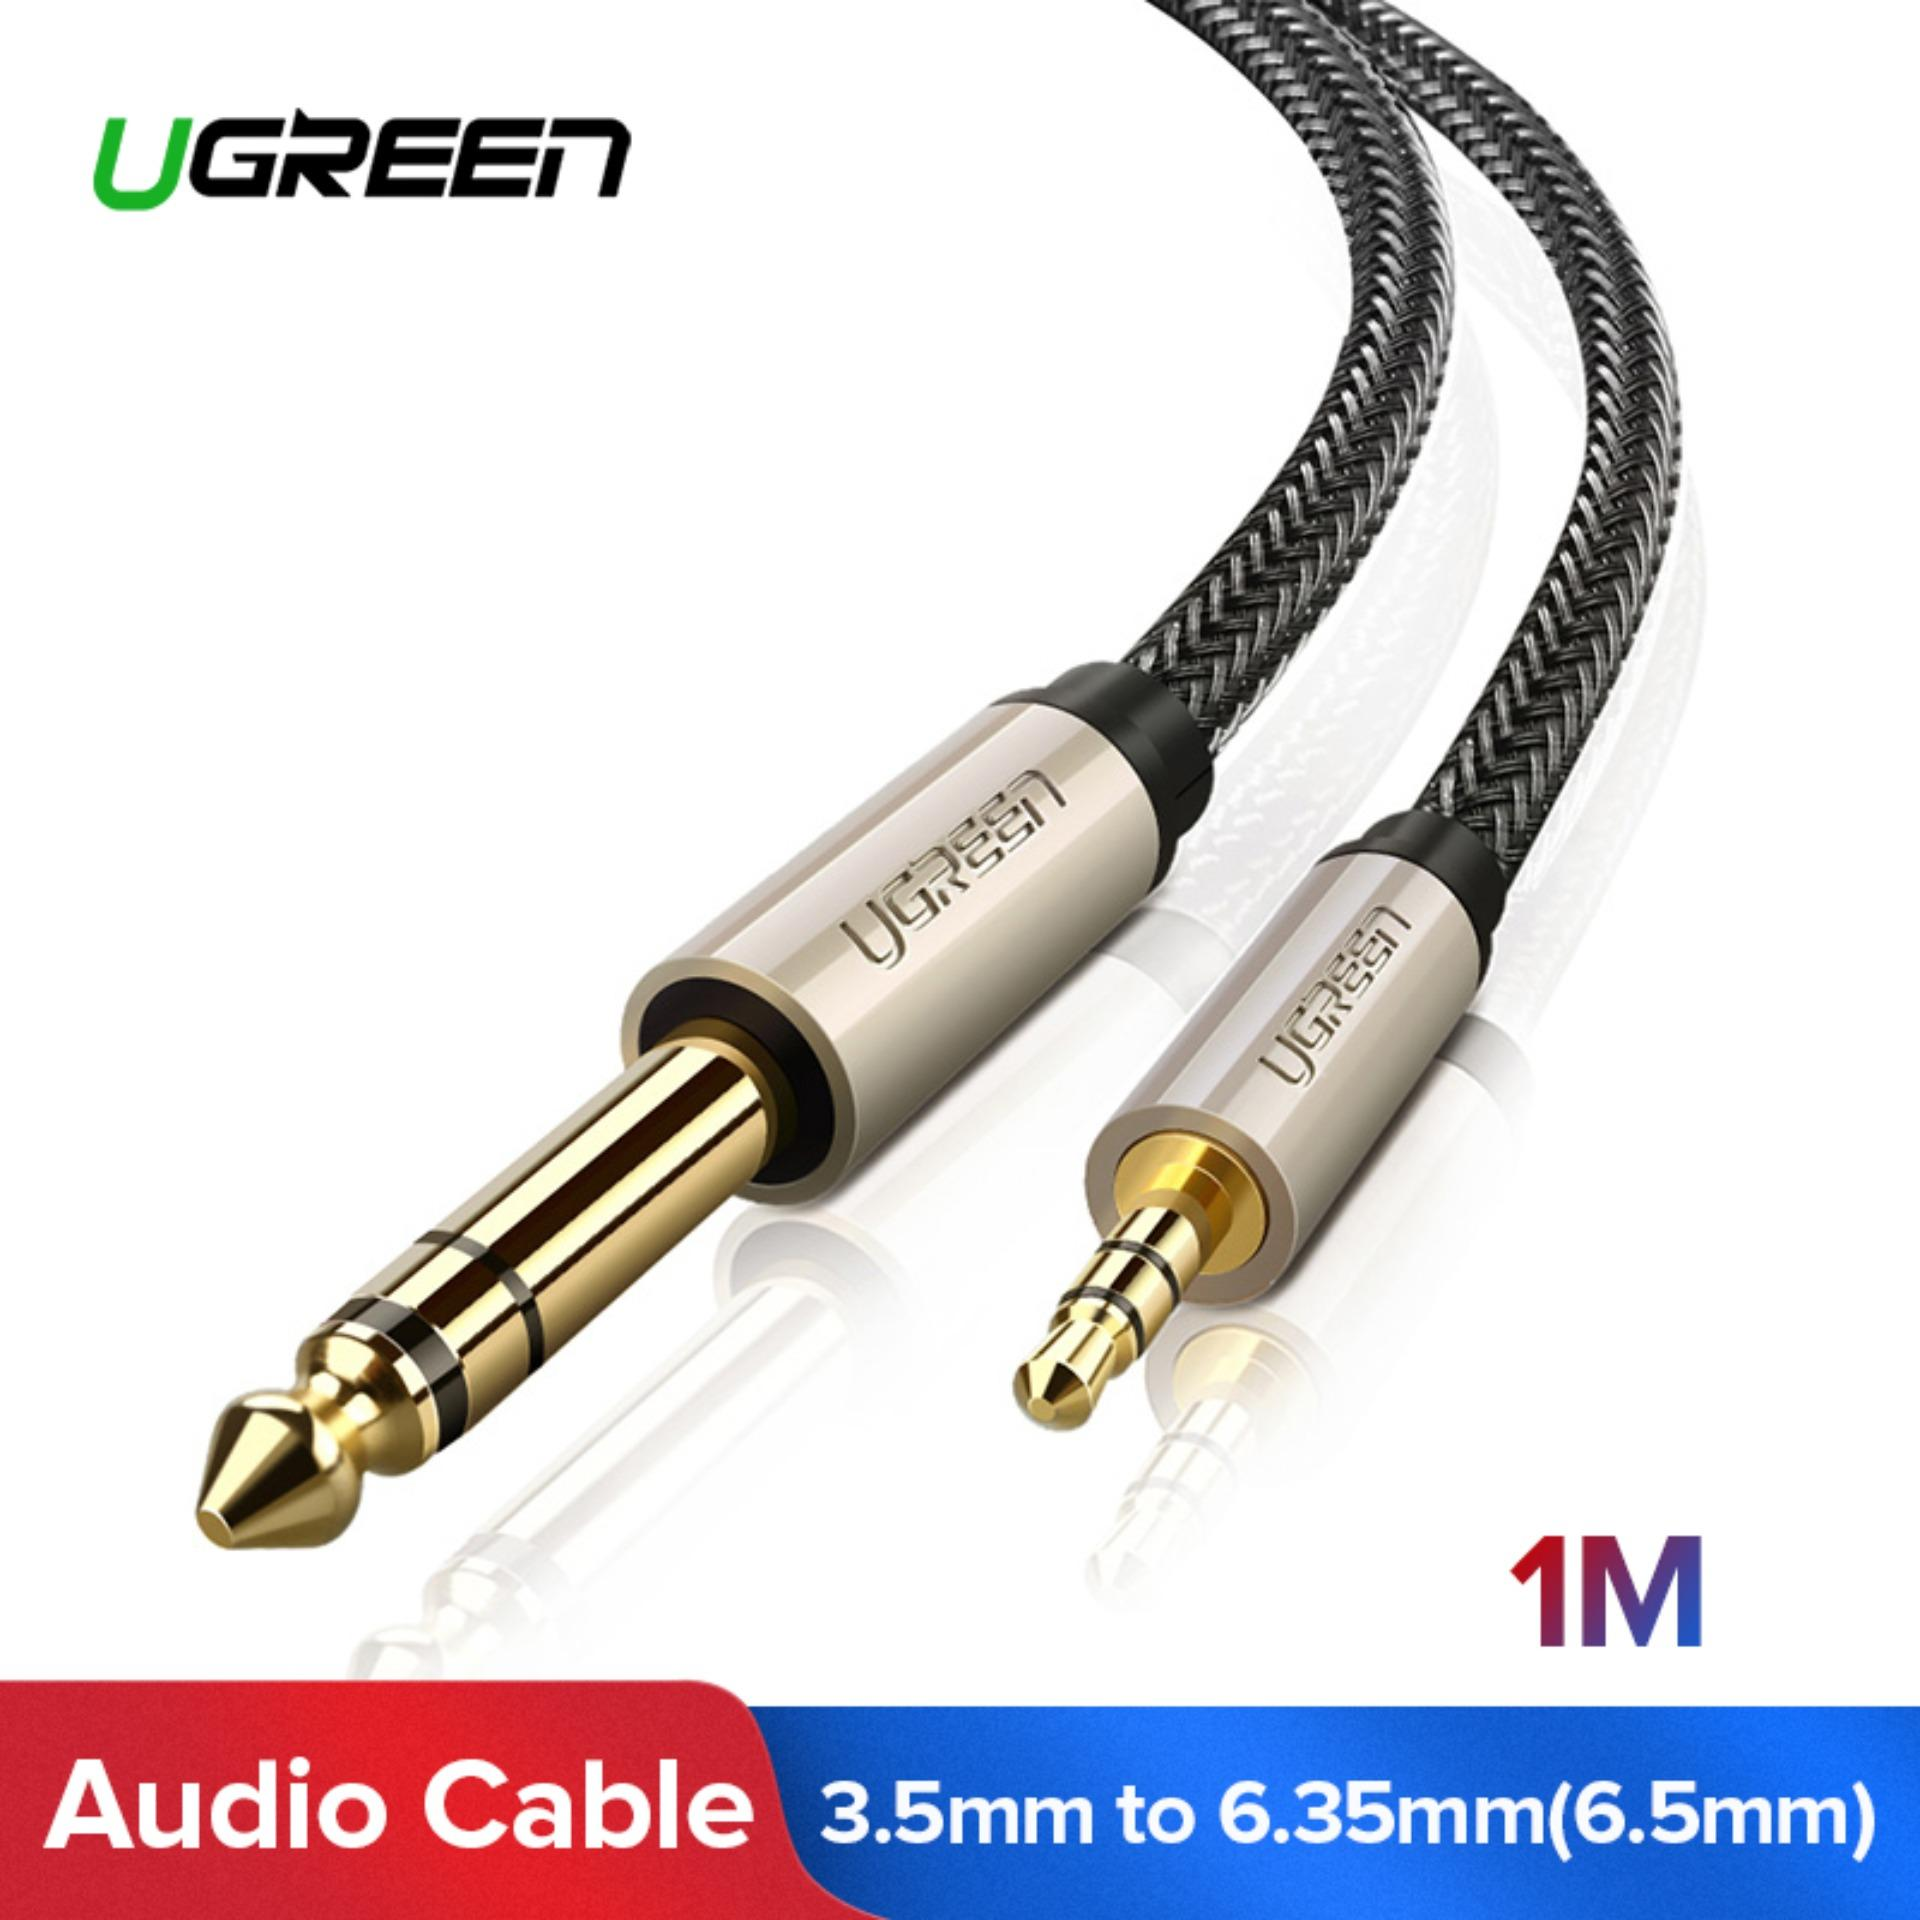 Audio Cable For Sale Hdmi Prices Brands Specs In Xlr Wiring Multiple Speakers Ugreen 1meter 35mm To 635mm Adapter Aux Mixer Amplifier Cd Player Speaker